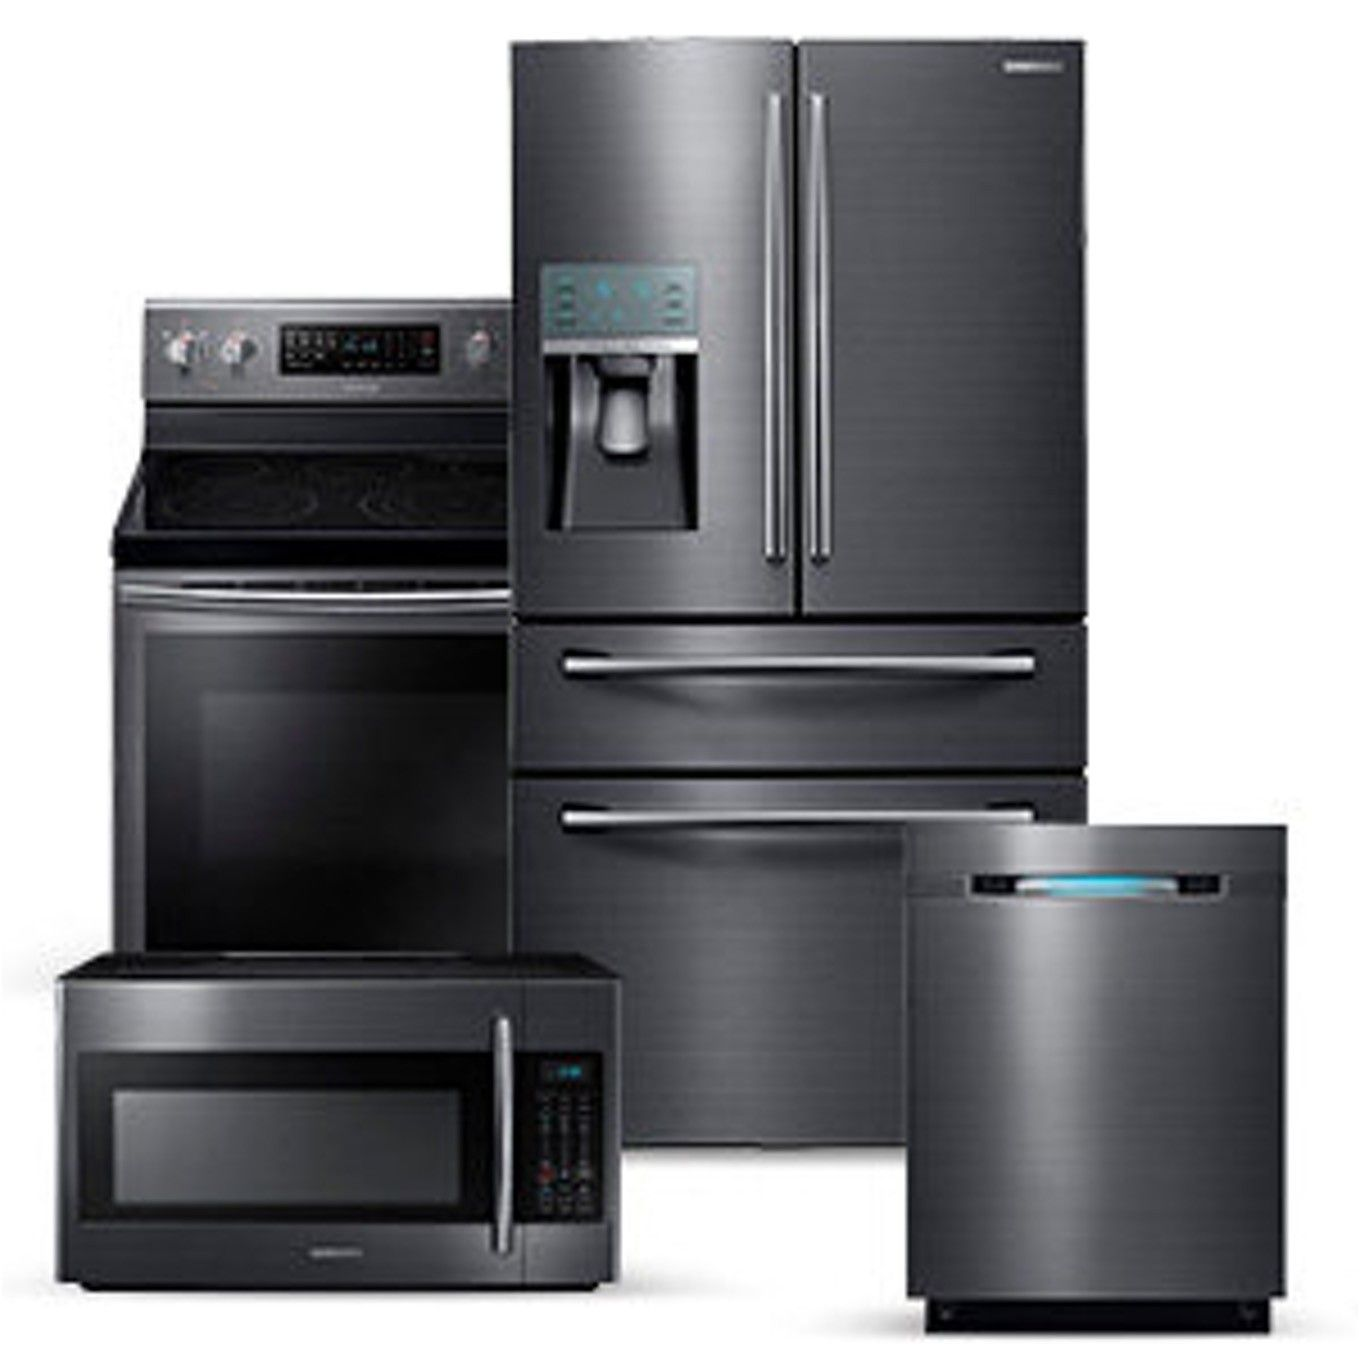 Kitchen Appliance Packages Home Depot Kitchen Appliances Packages Hhgregg Appliance Packages Home Depot